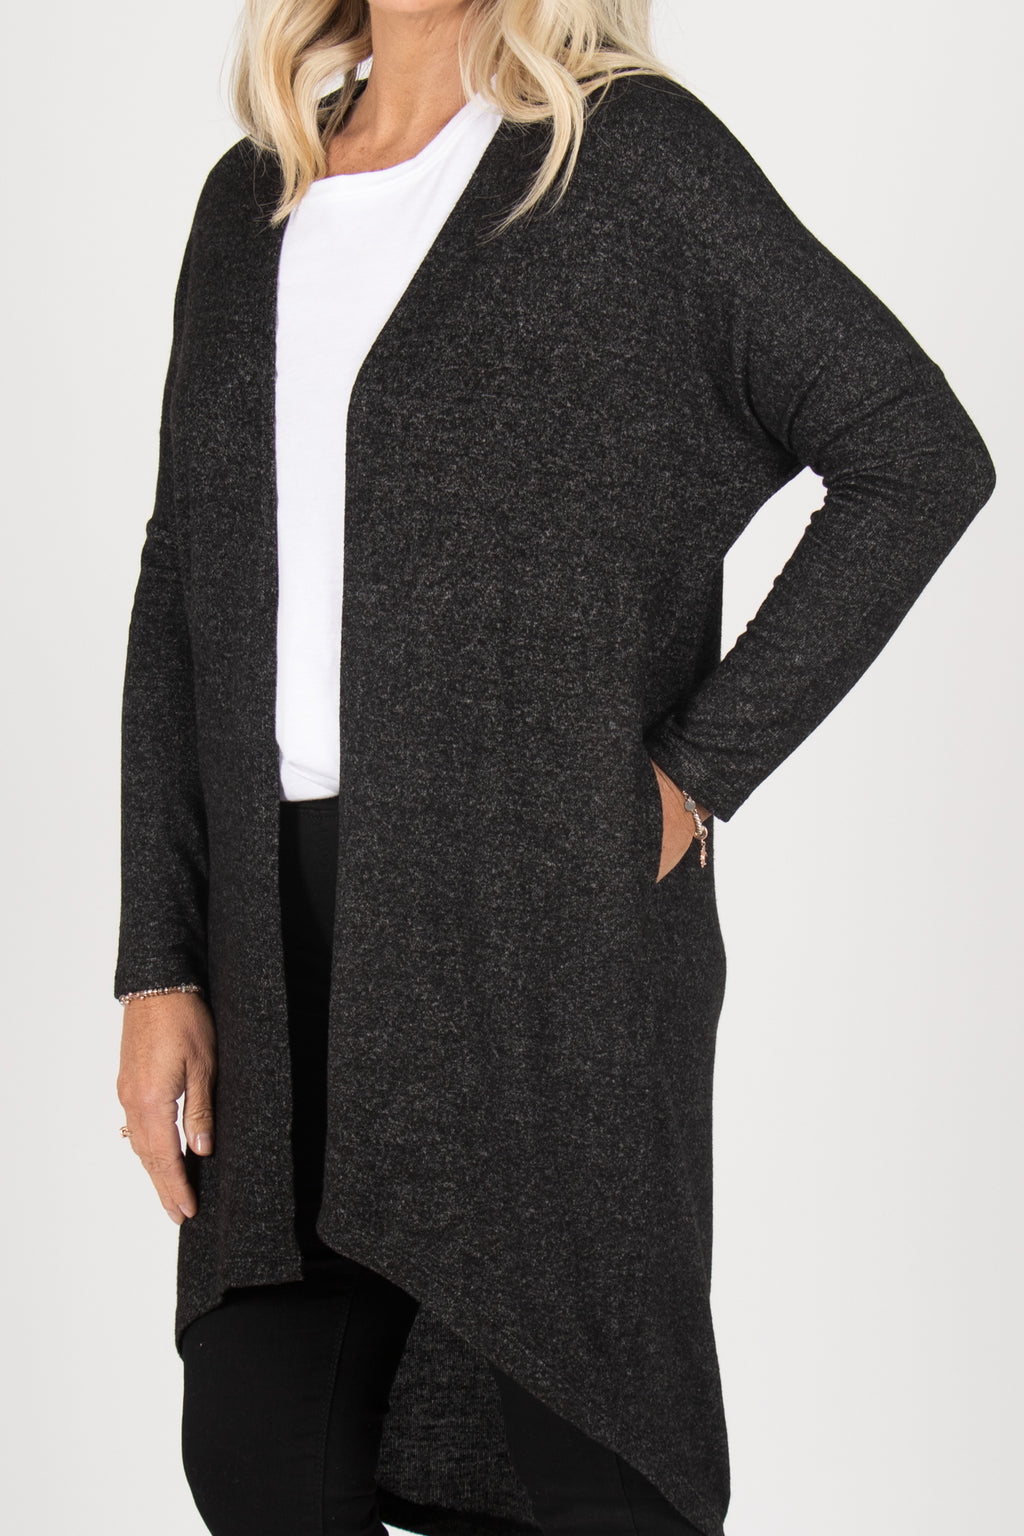 Harlow Cardigan in Charcoal